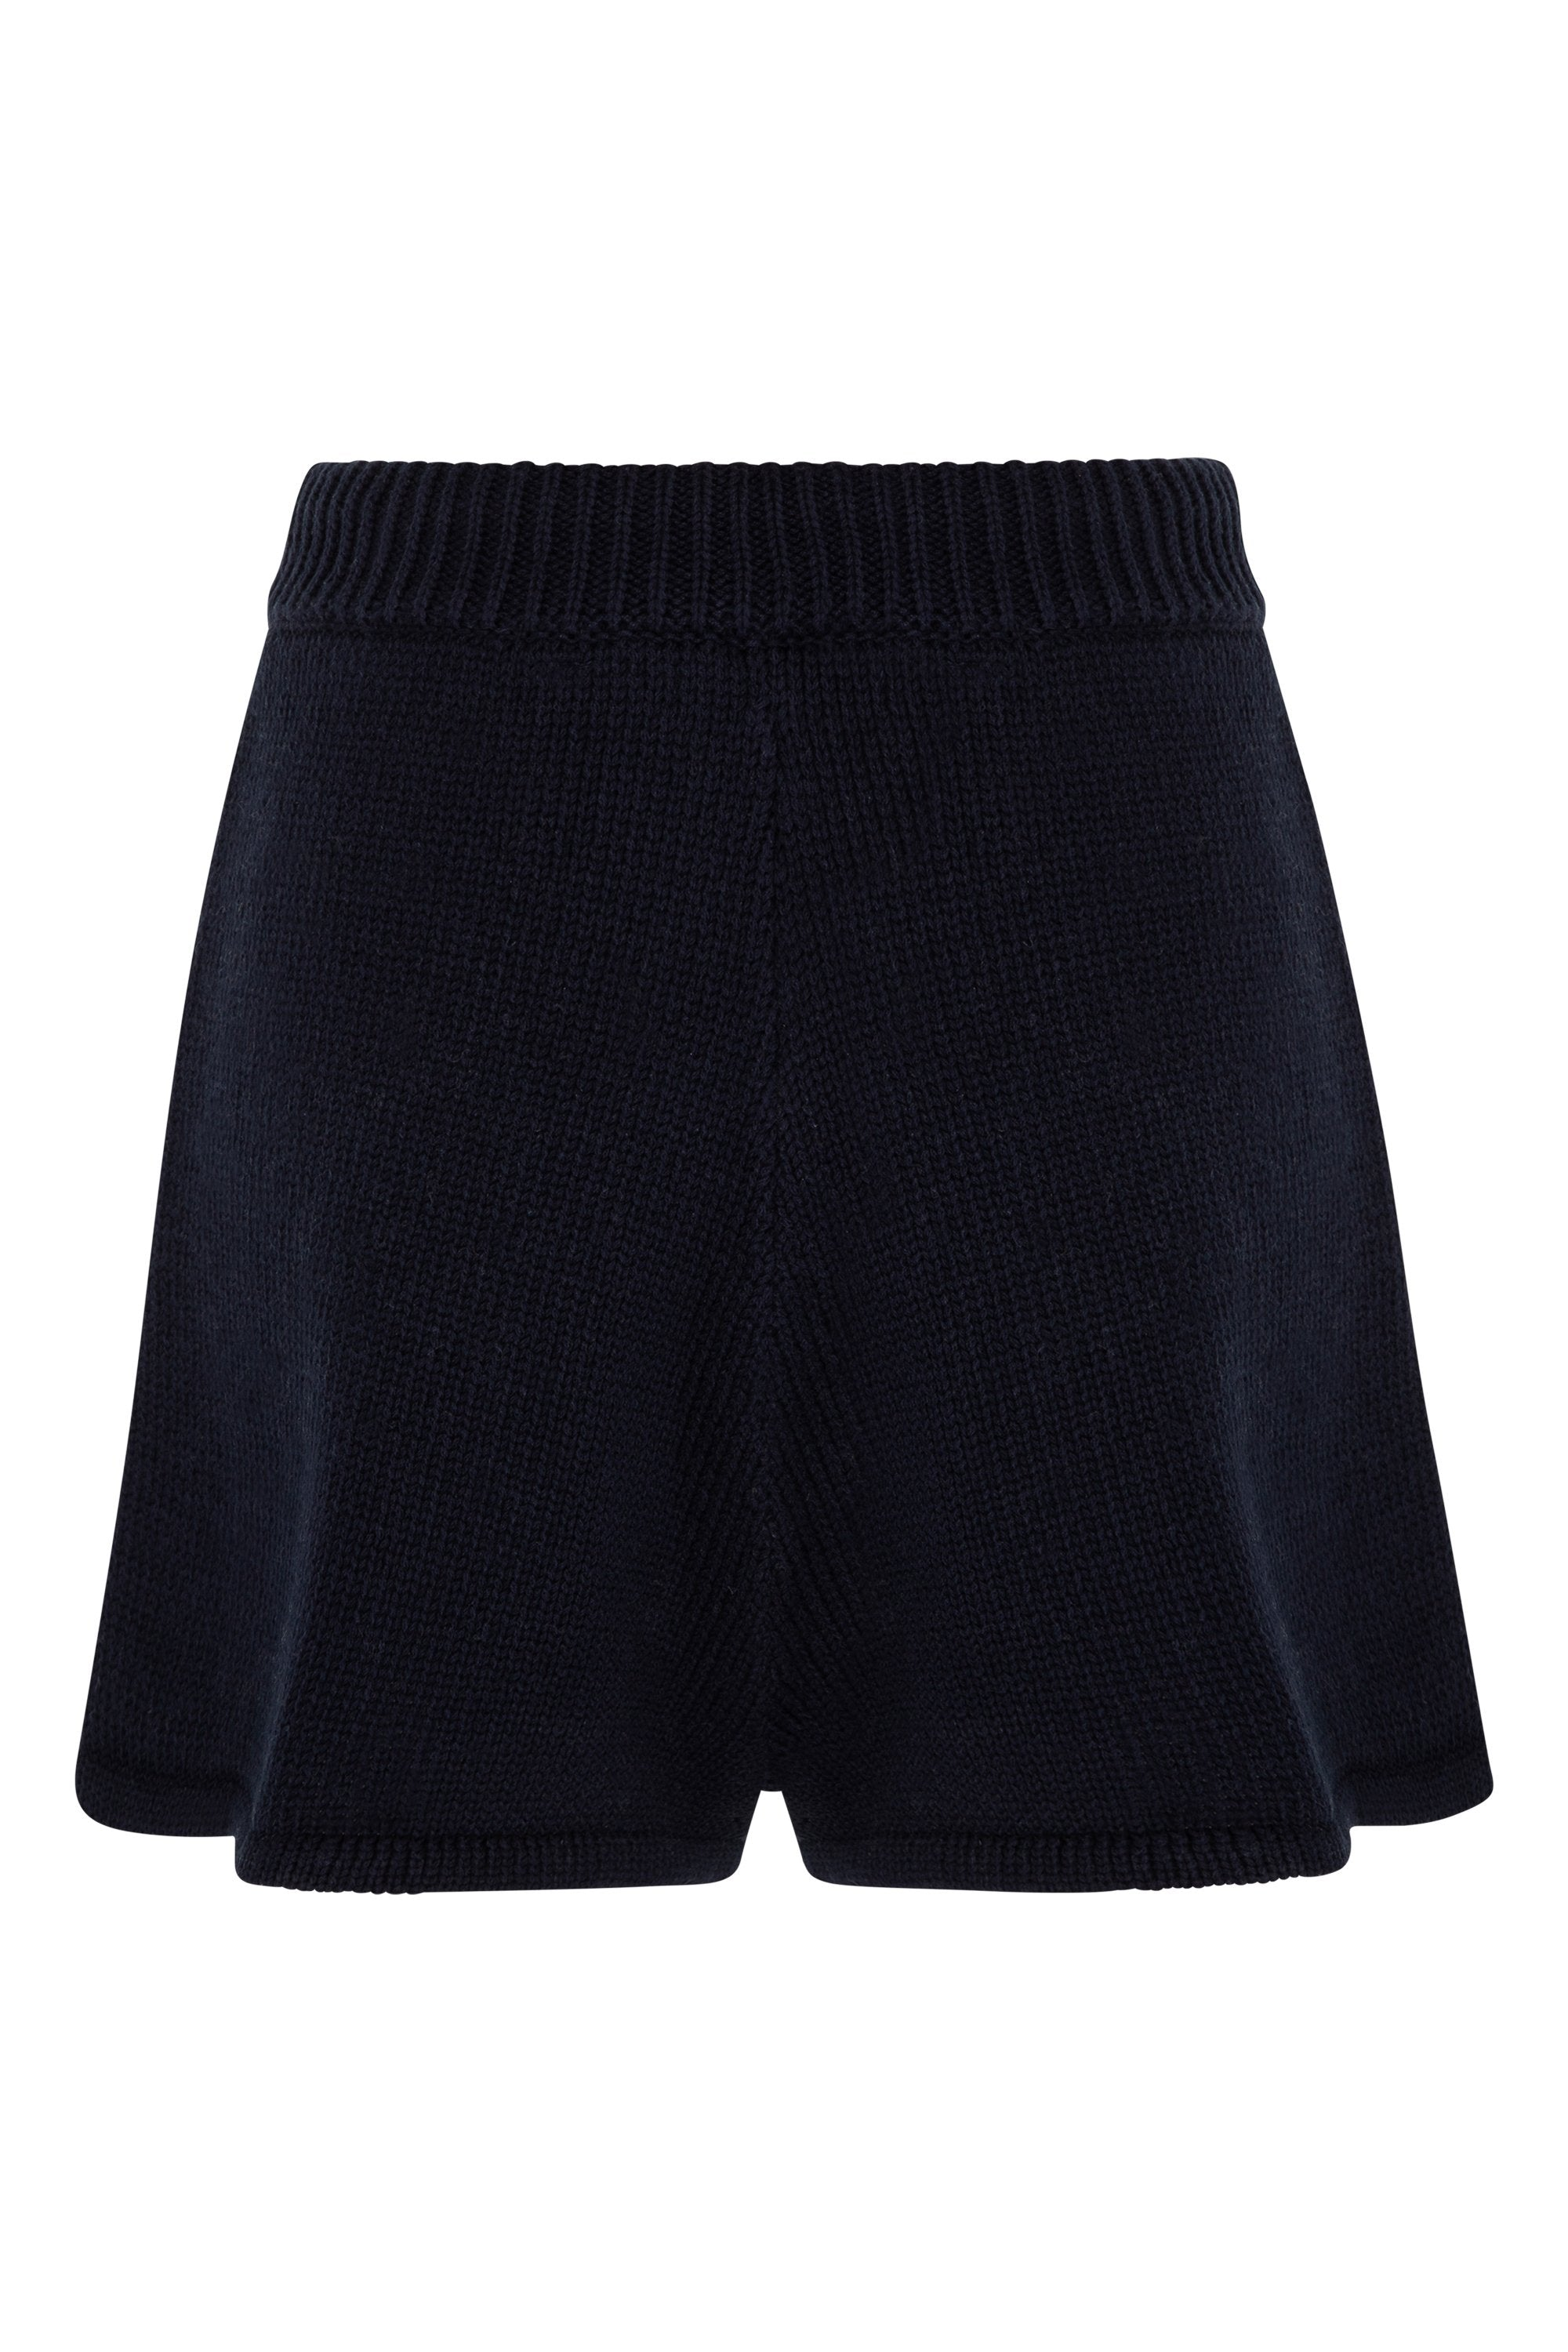 May Knit Shorts In Navy